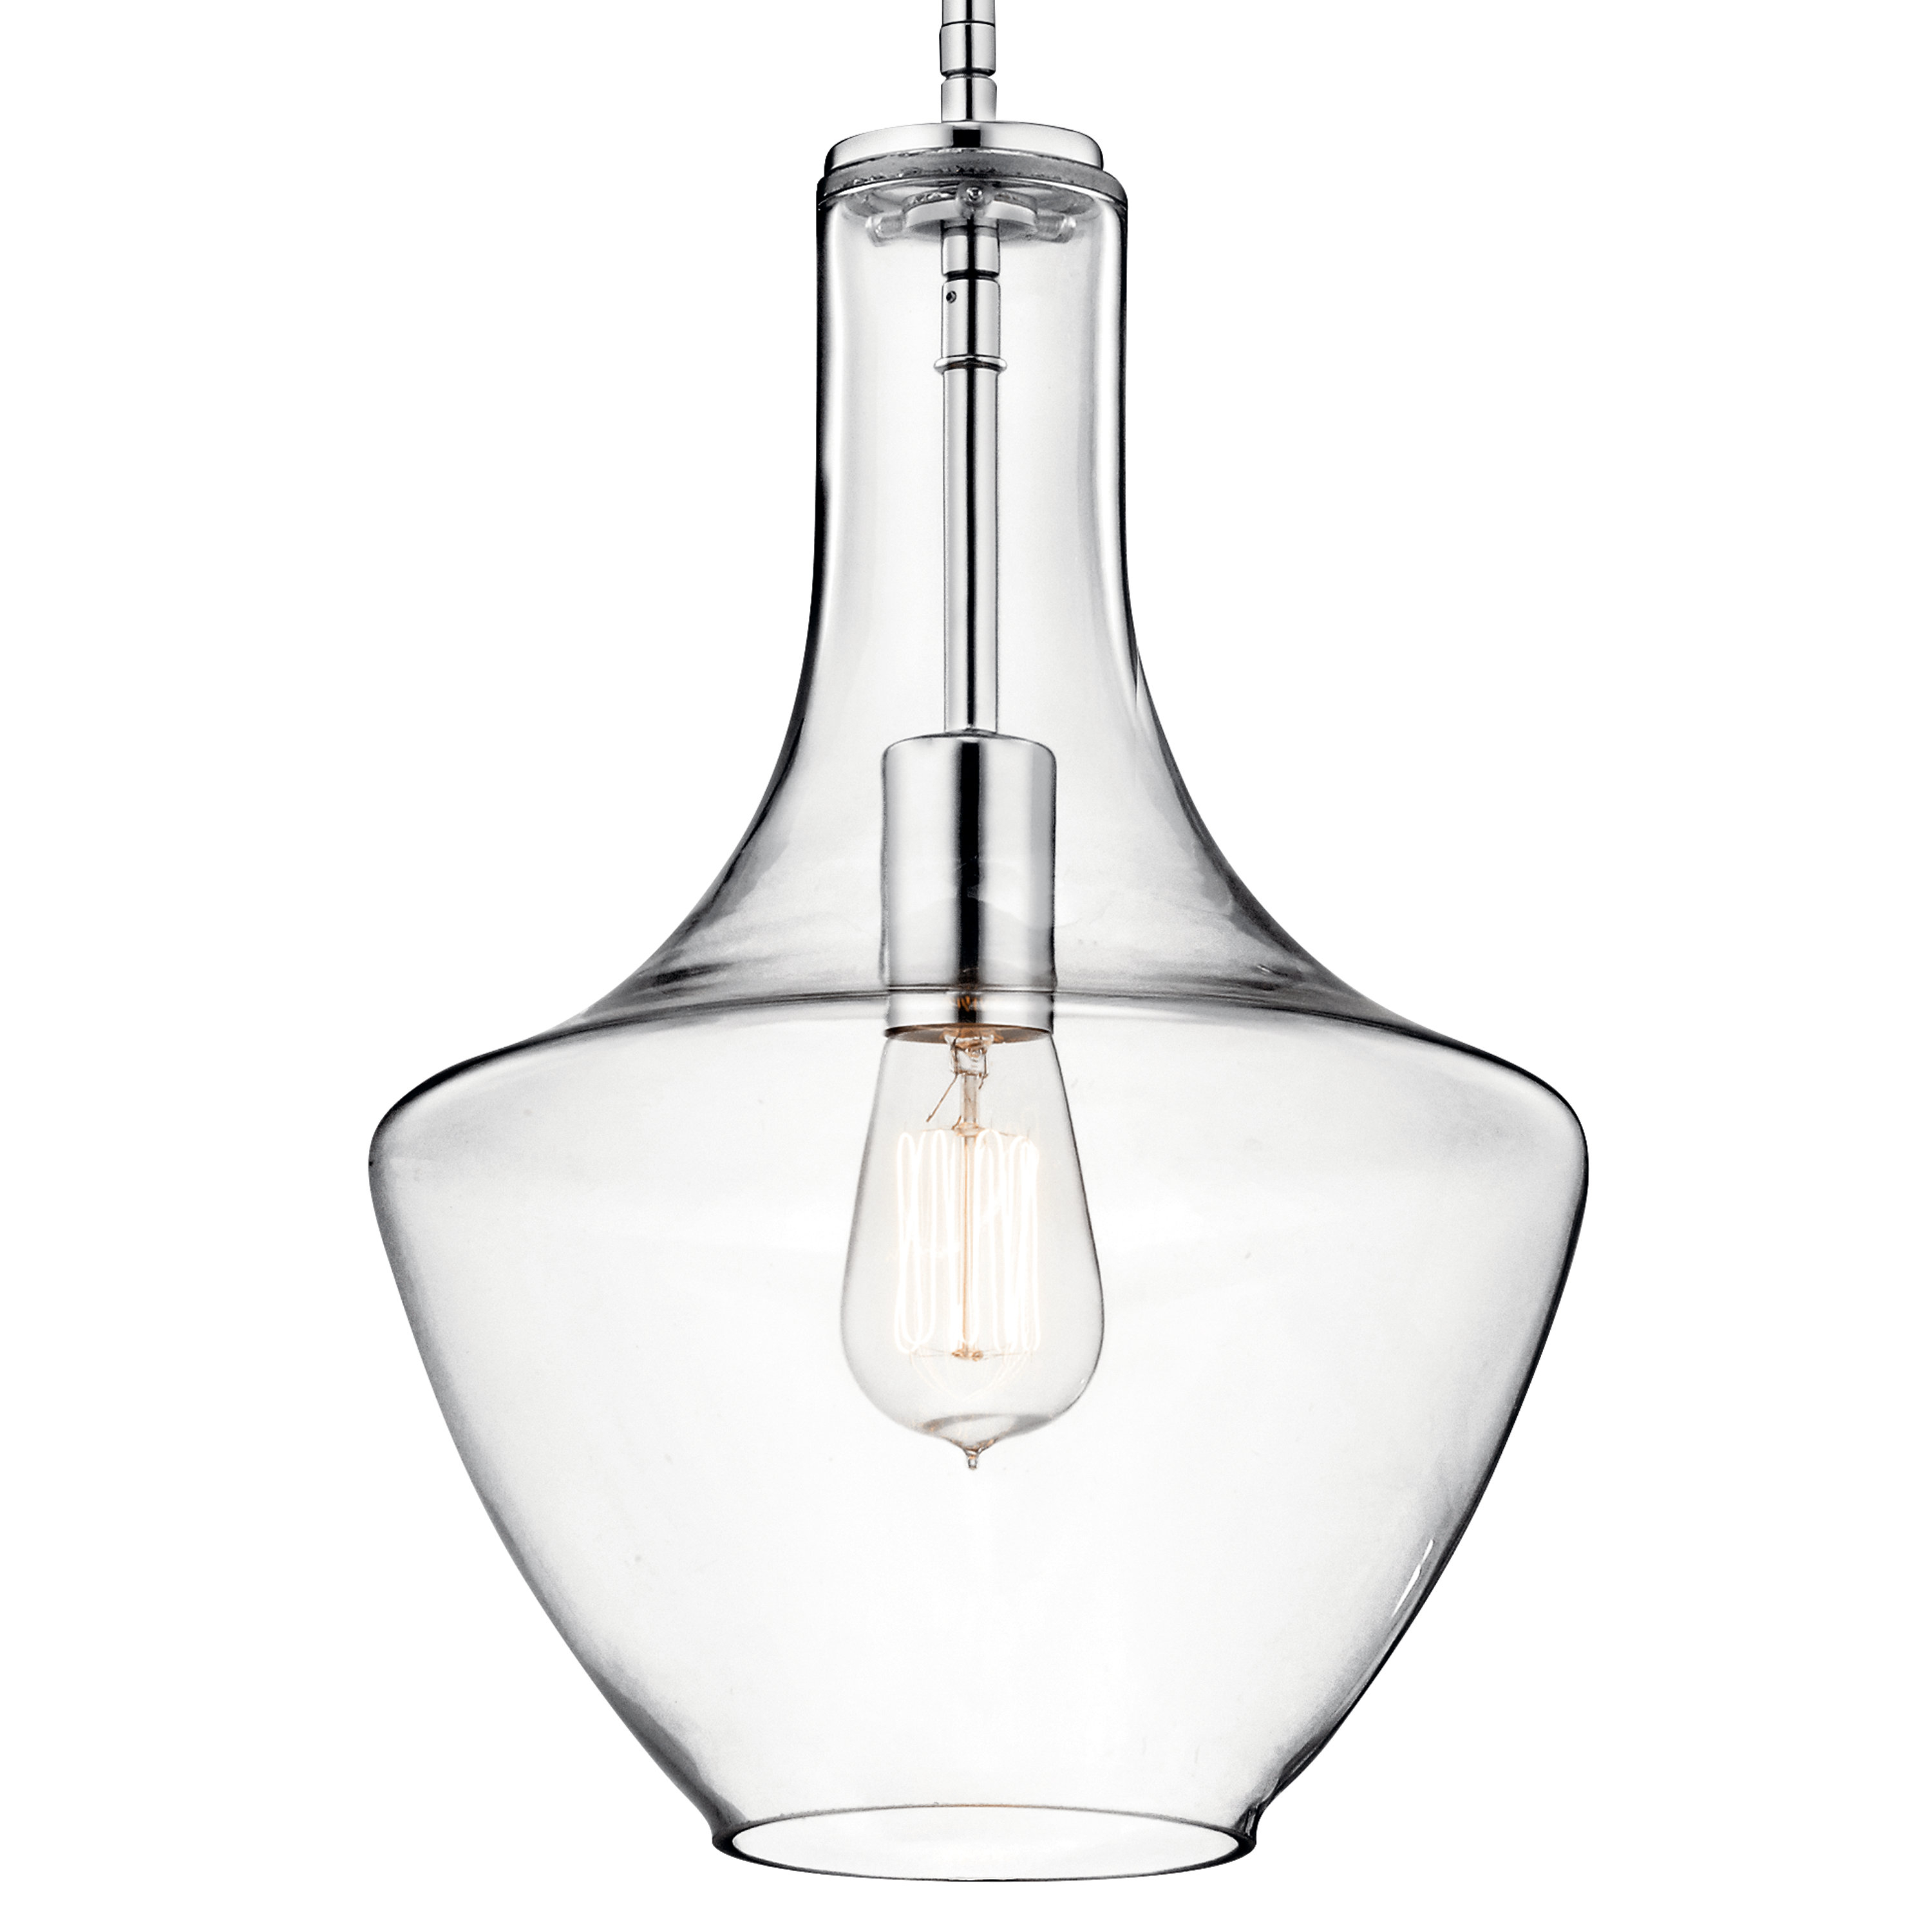 Popular 1 Light Single Schoolhouse Pendant Throughout 1 Light Single Schoolhouse Pendants (View 15 of 20)